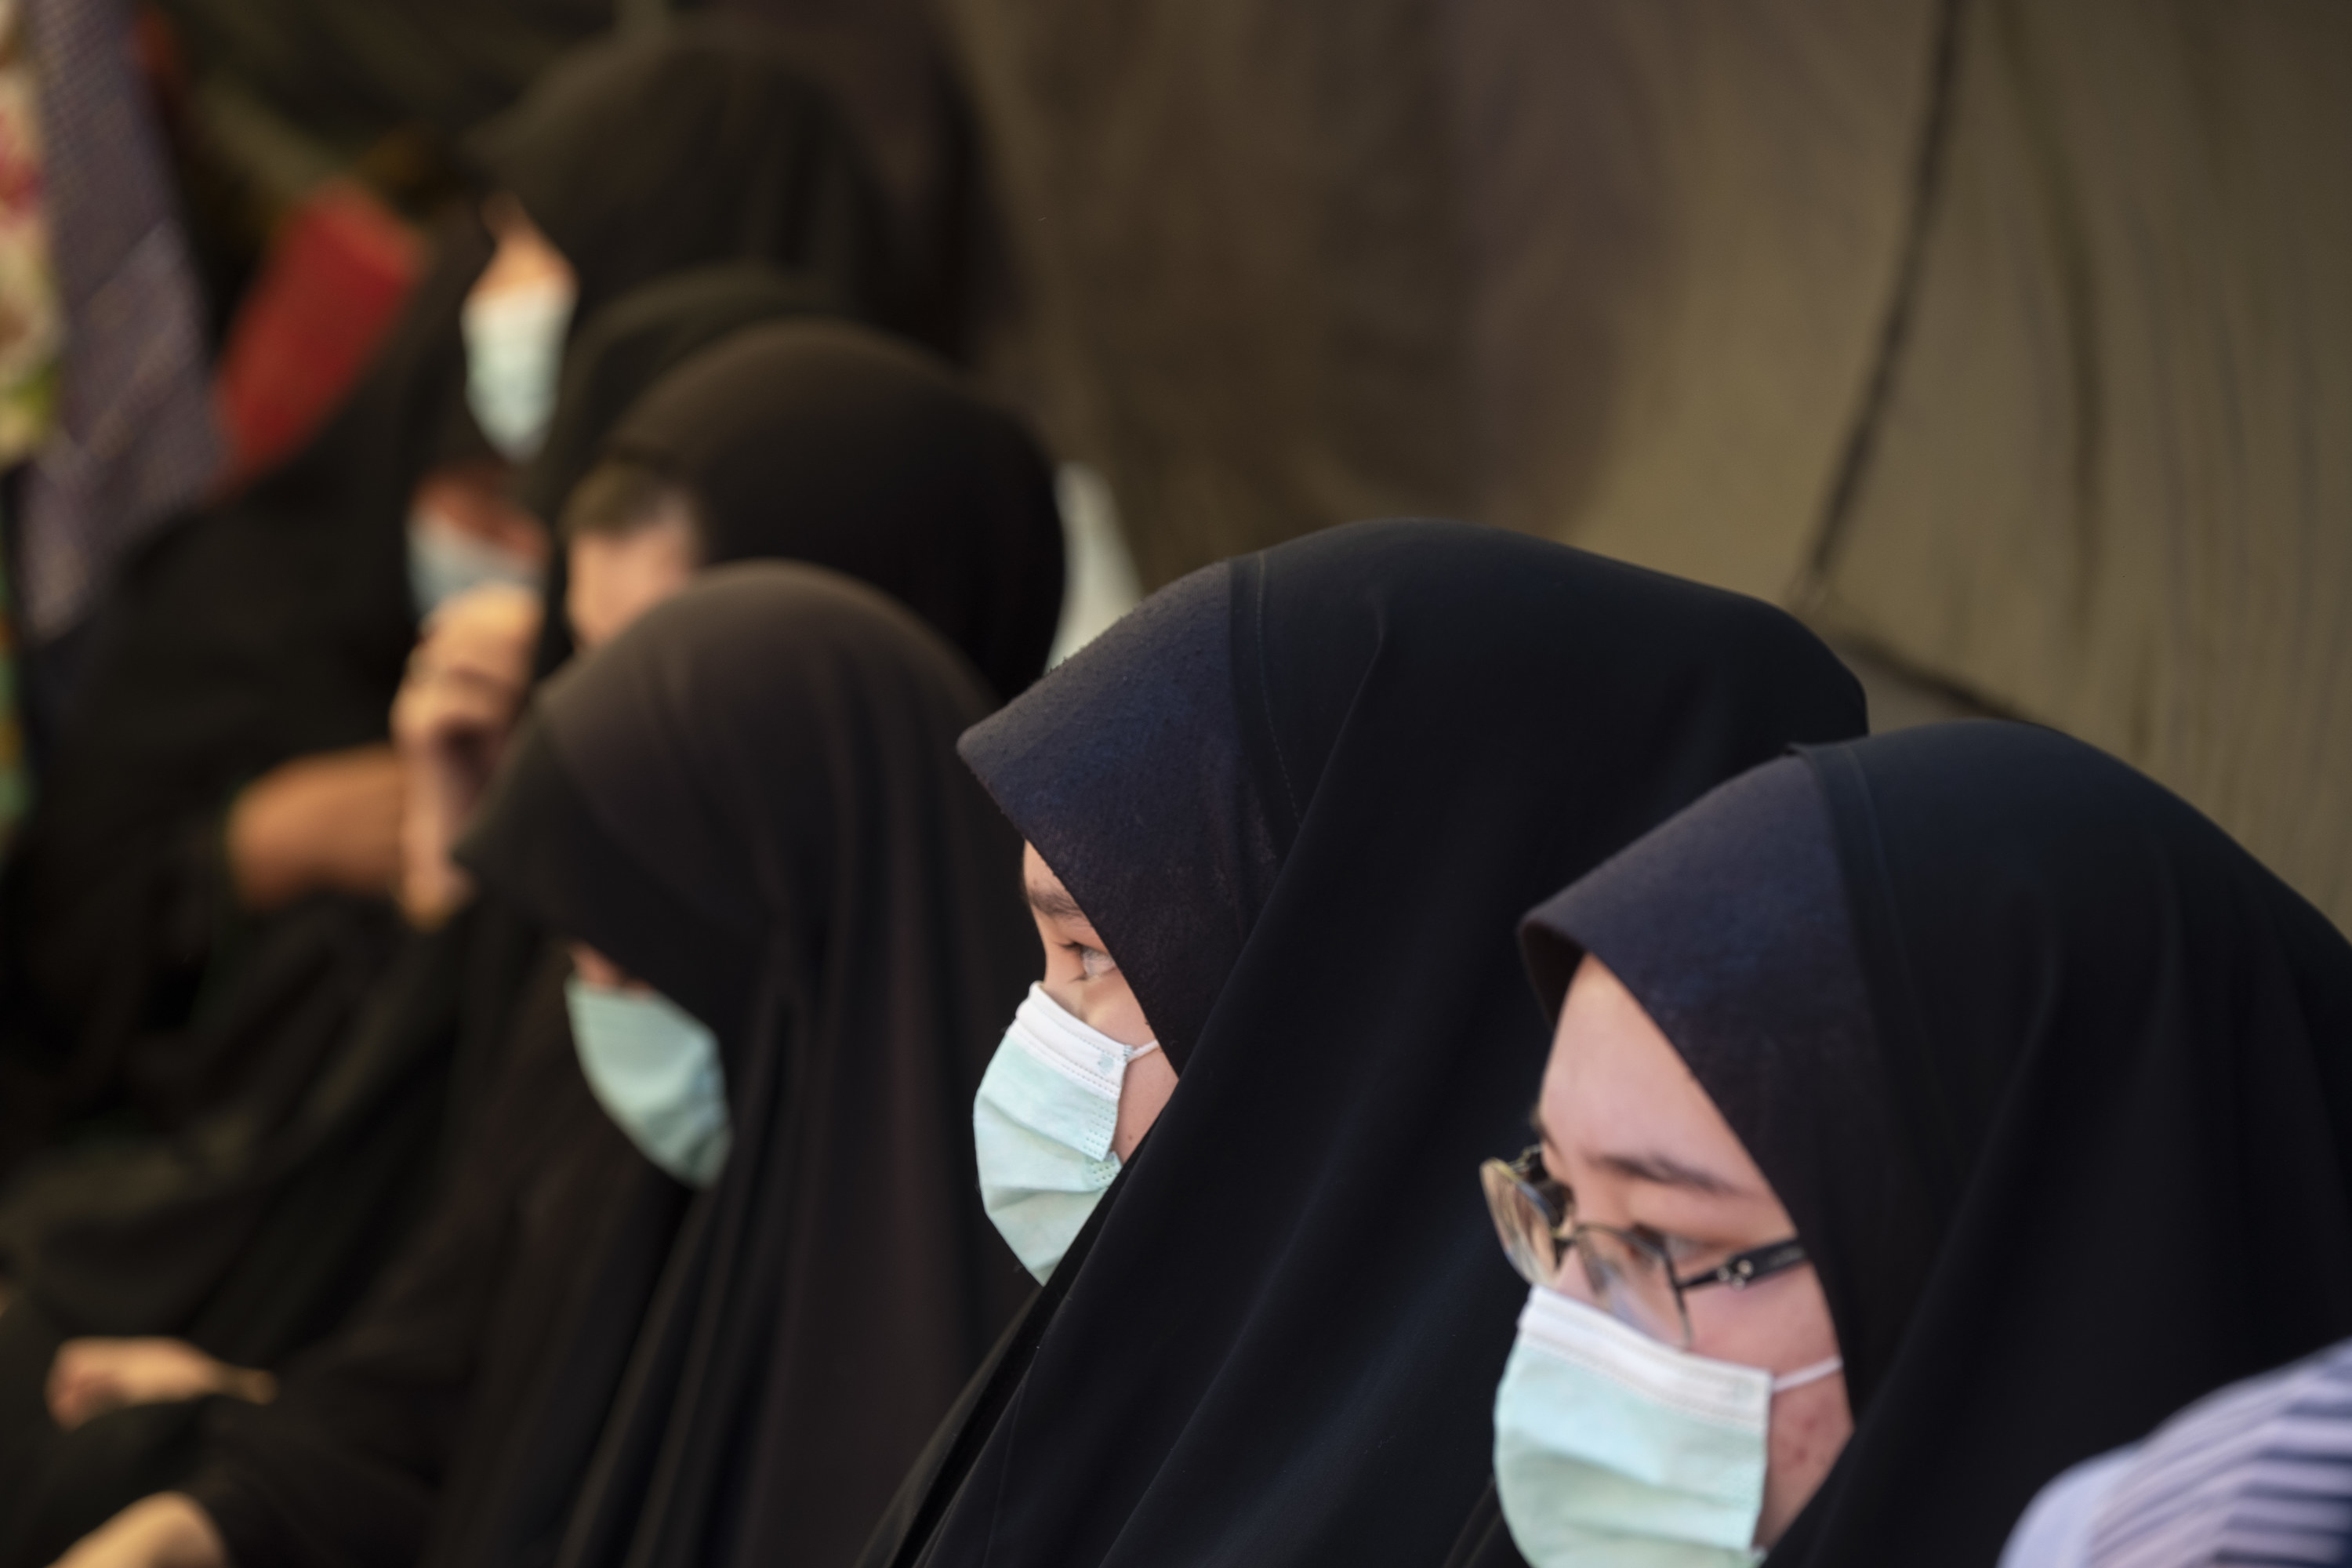 Women wearing hijab and surgical masks